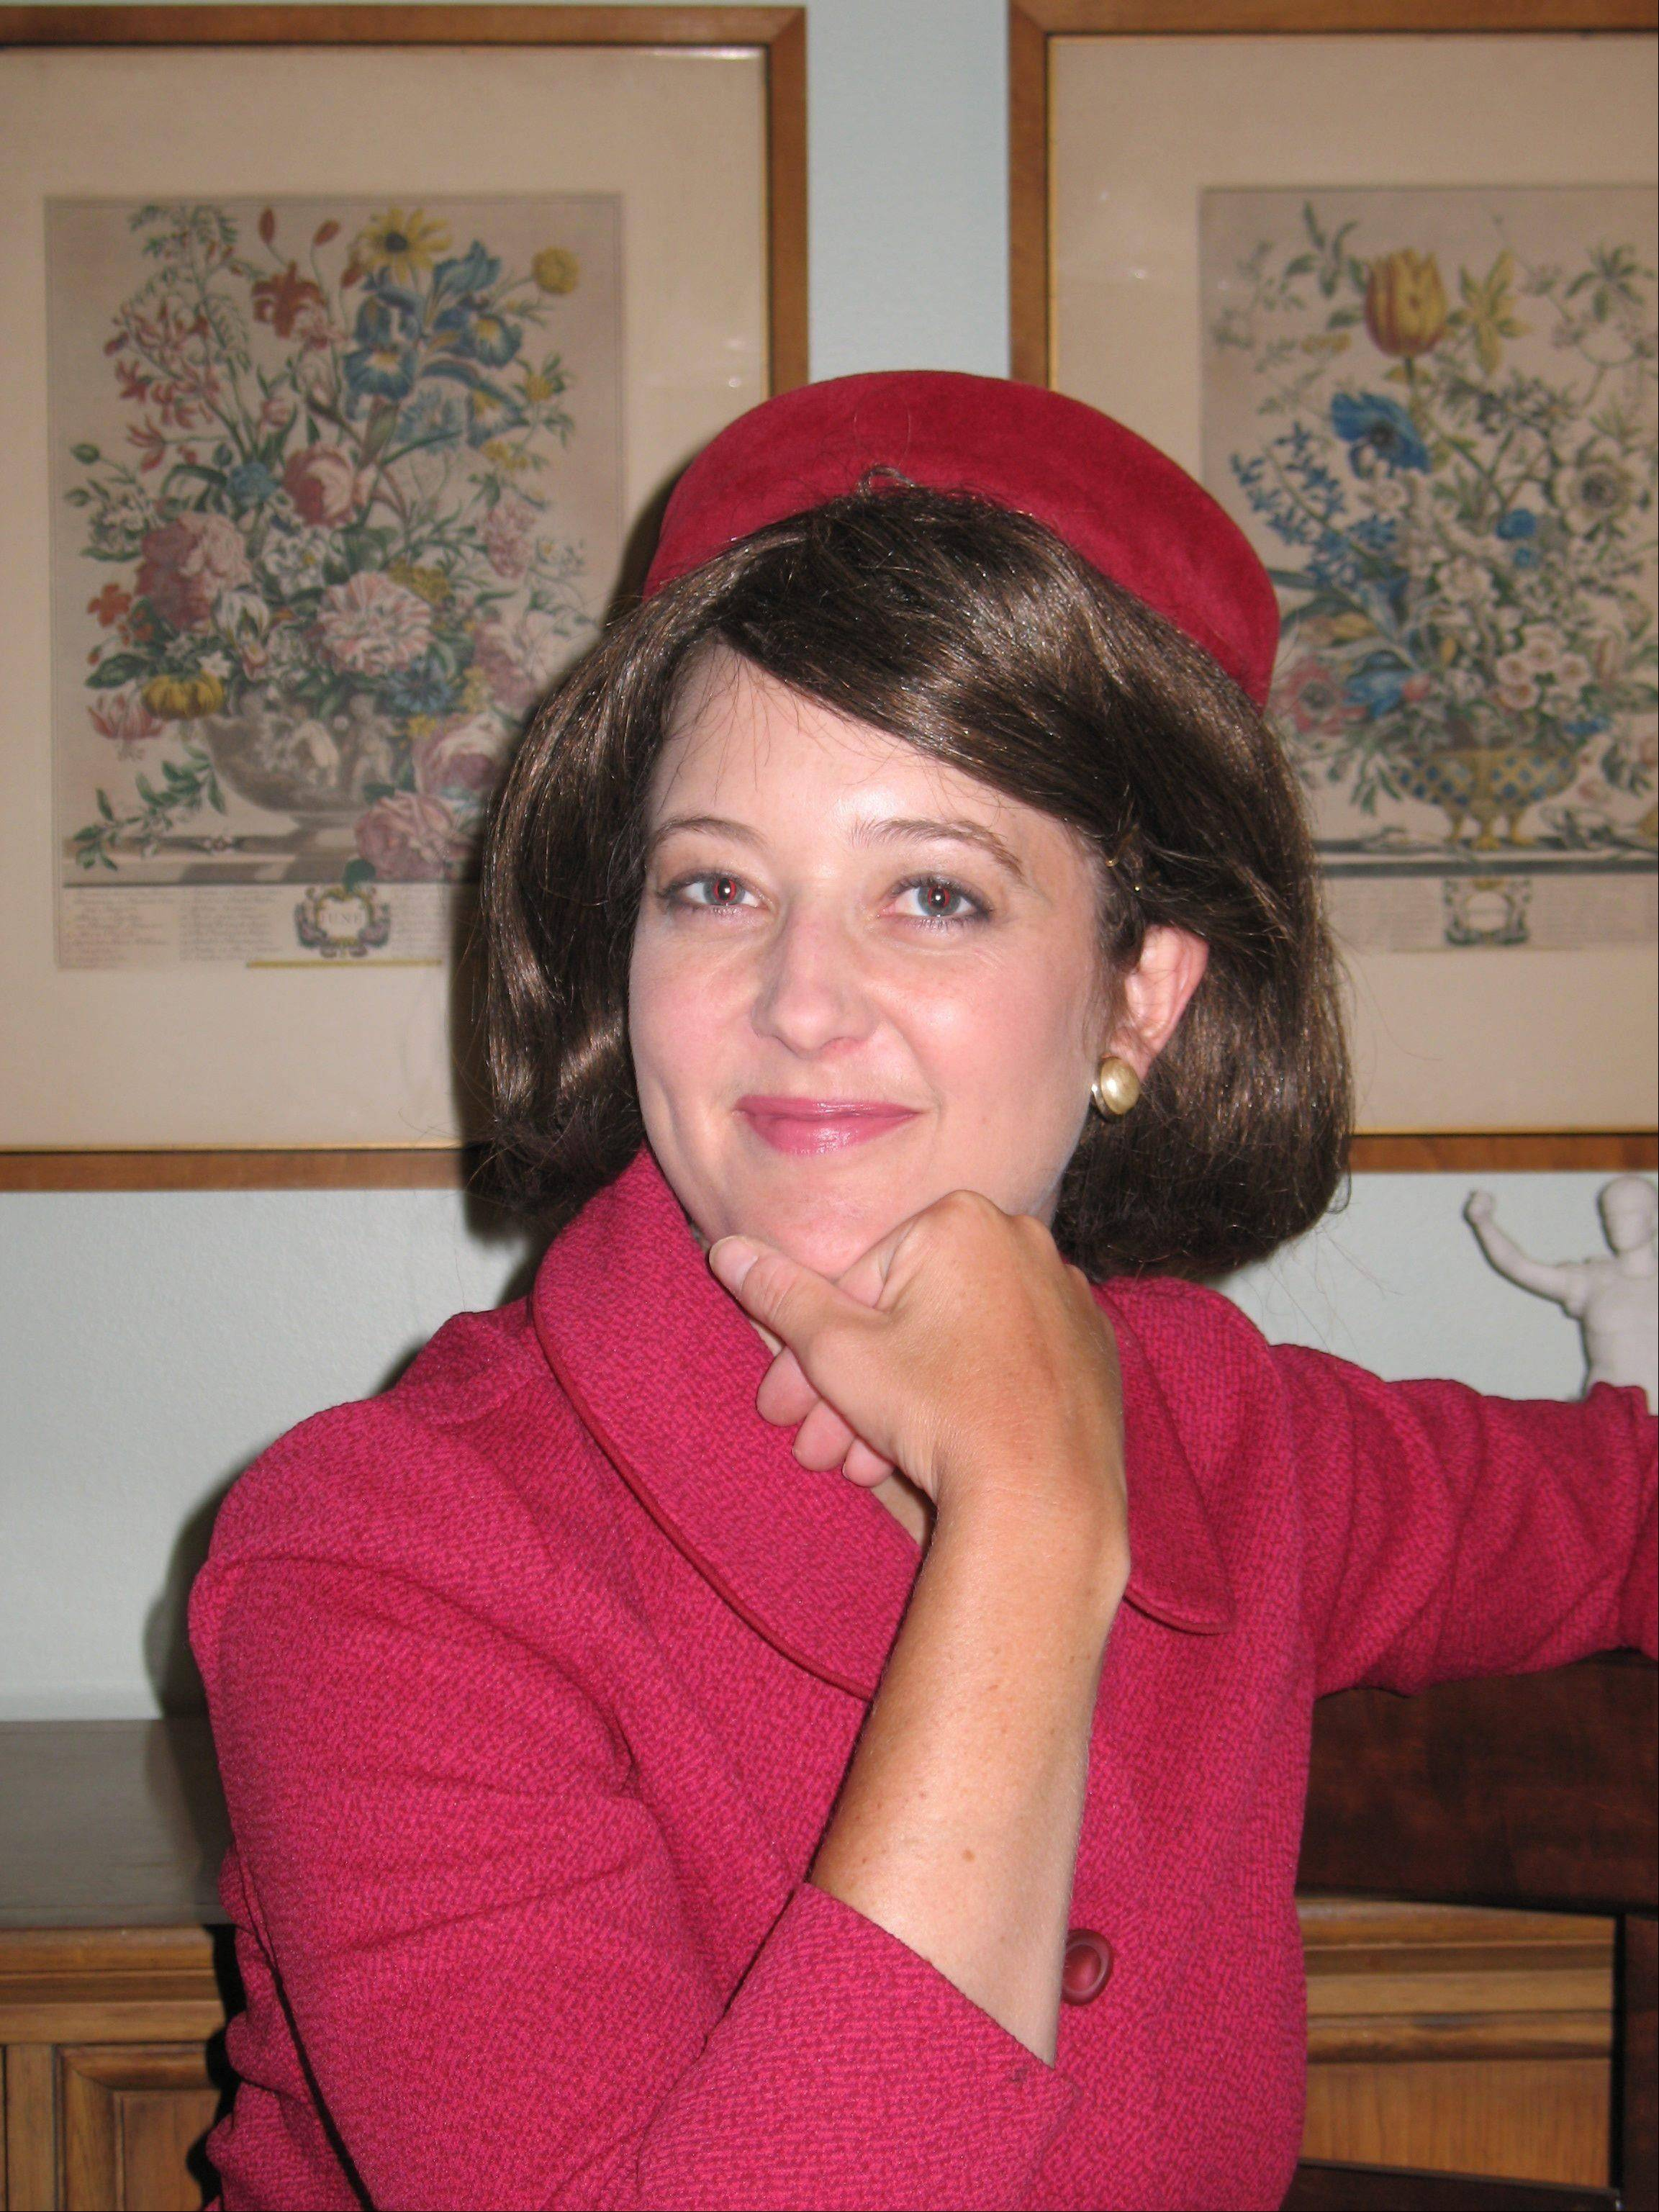 Leslie Goddard will portray Jacqueline Kennedy Tuesday, Nov. 19.